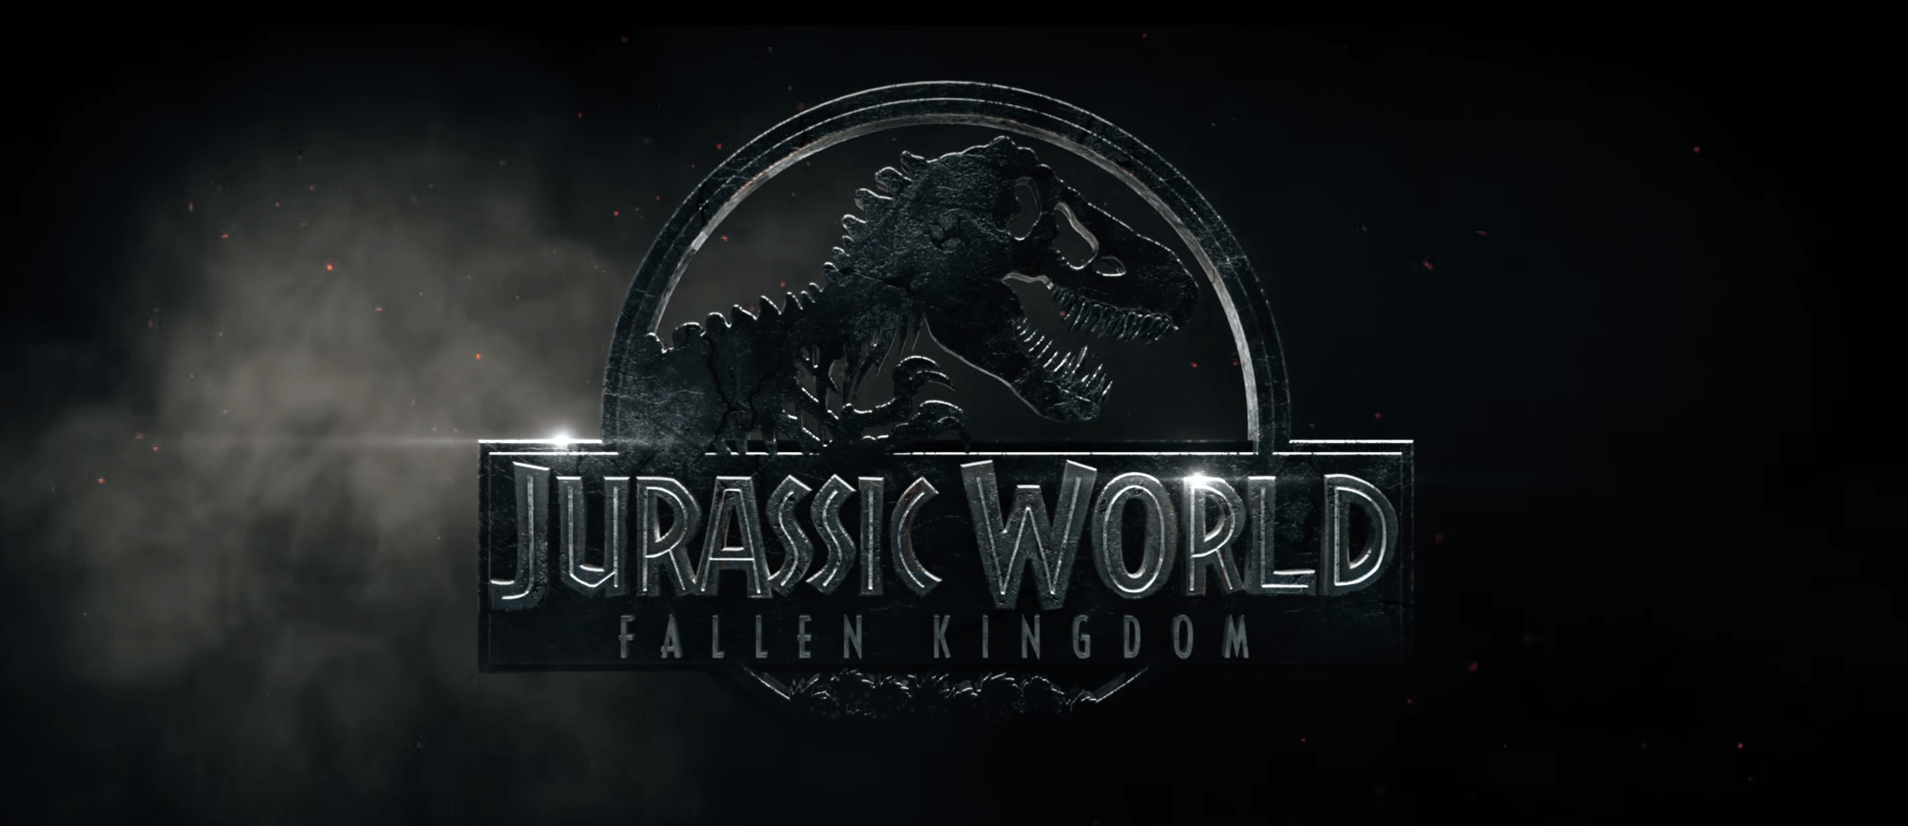 Jurassic World 2 Fallen Kingdom HD Pictures Wallpapers